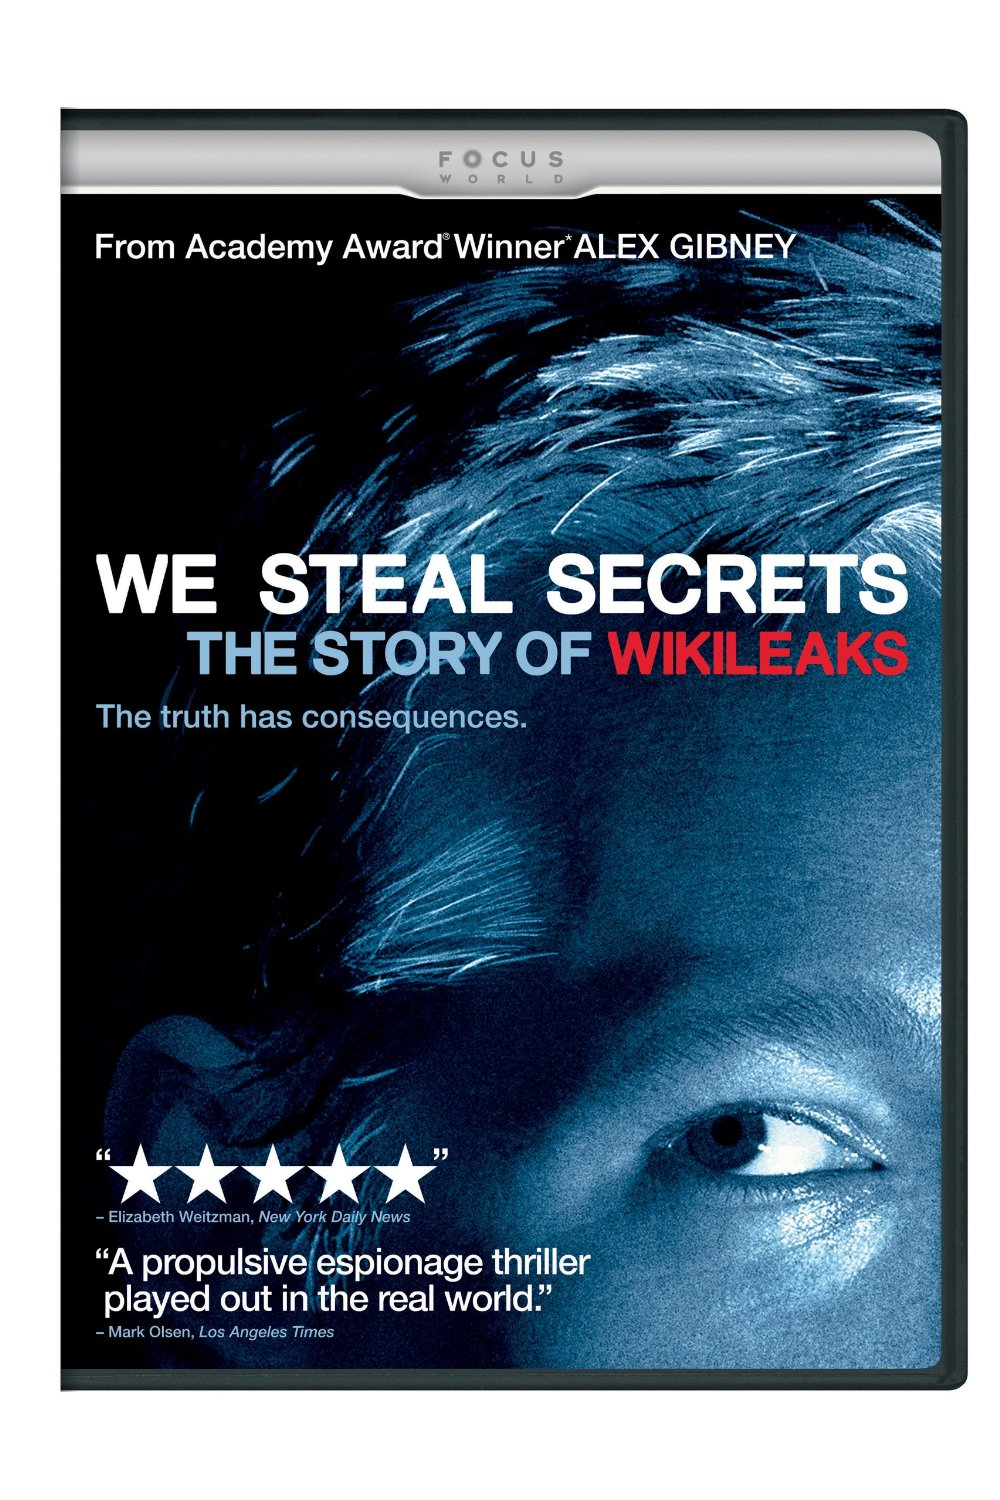 Image: DVD cover for 'We Steal Secrets'